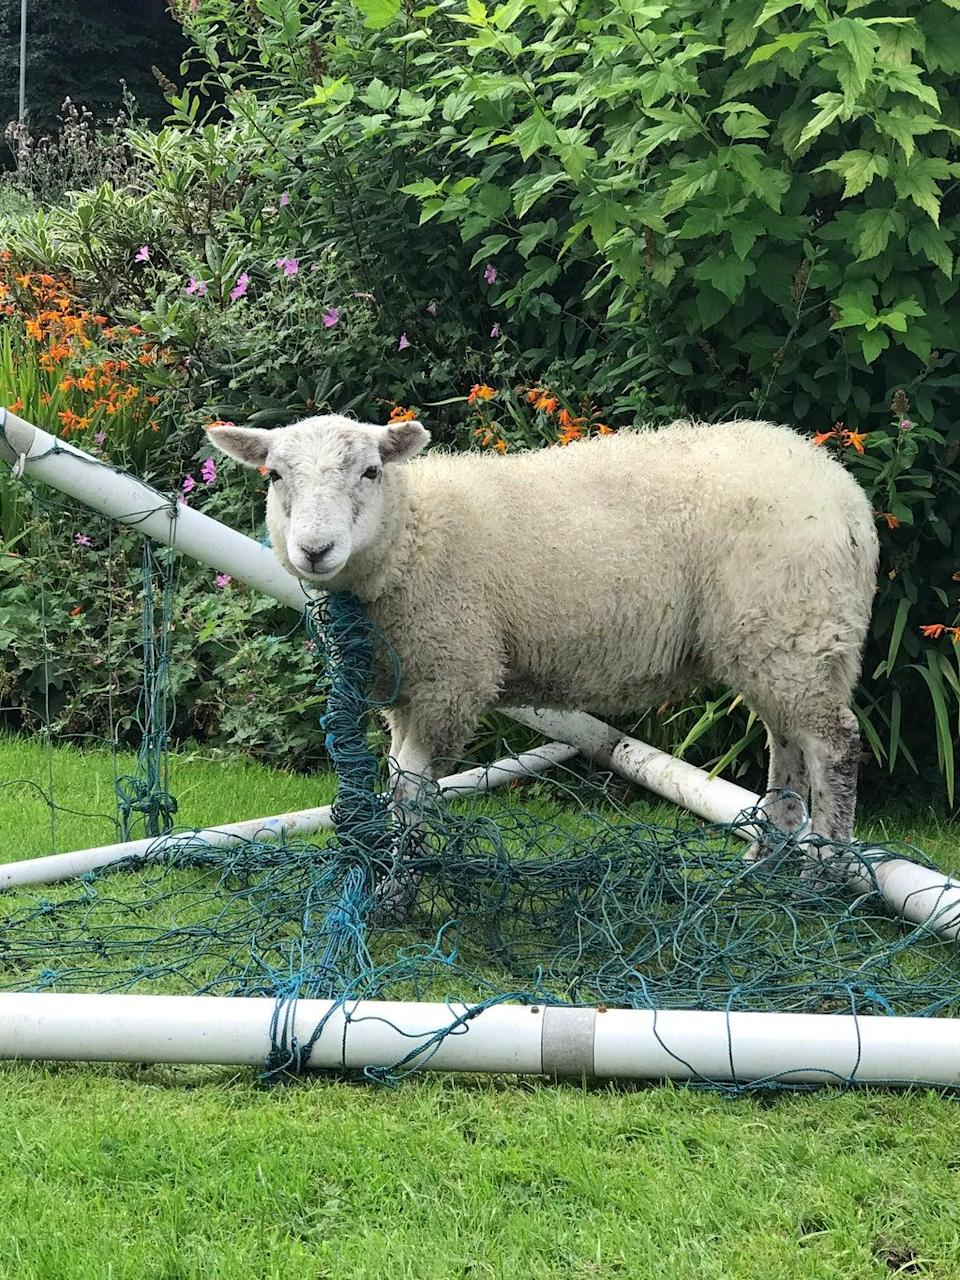 RSPCA rescue Lancashire dog from goal net (RSPCA/PA)